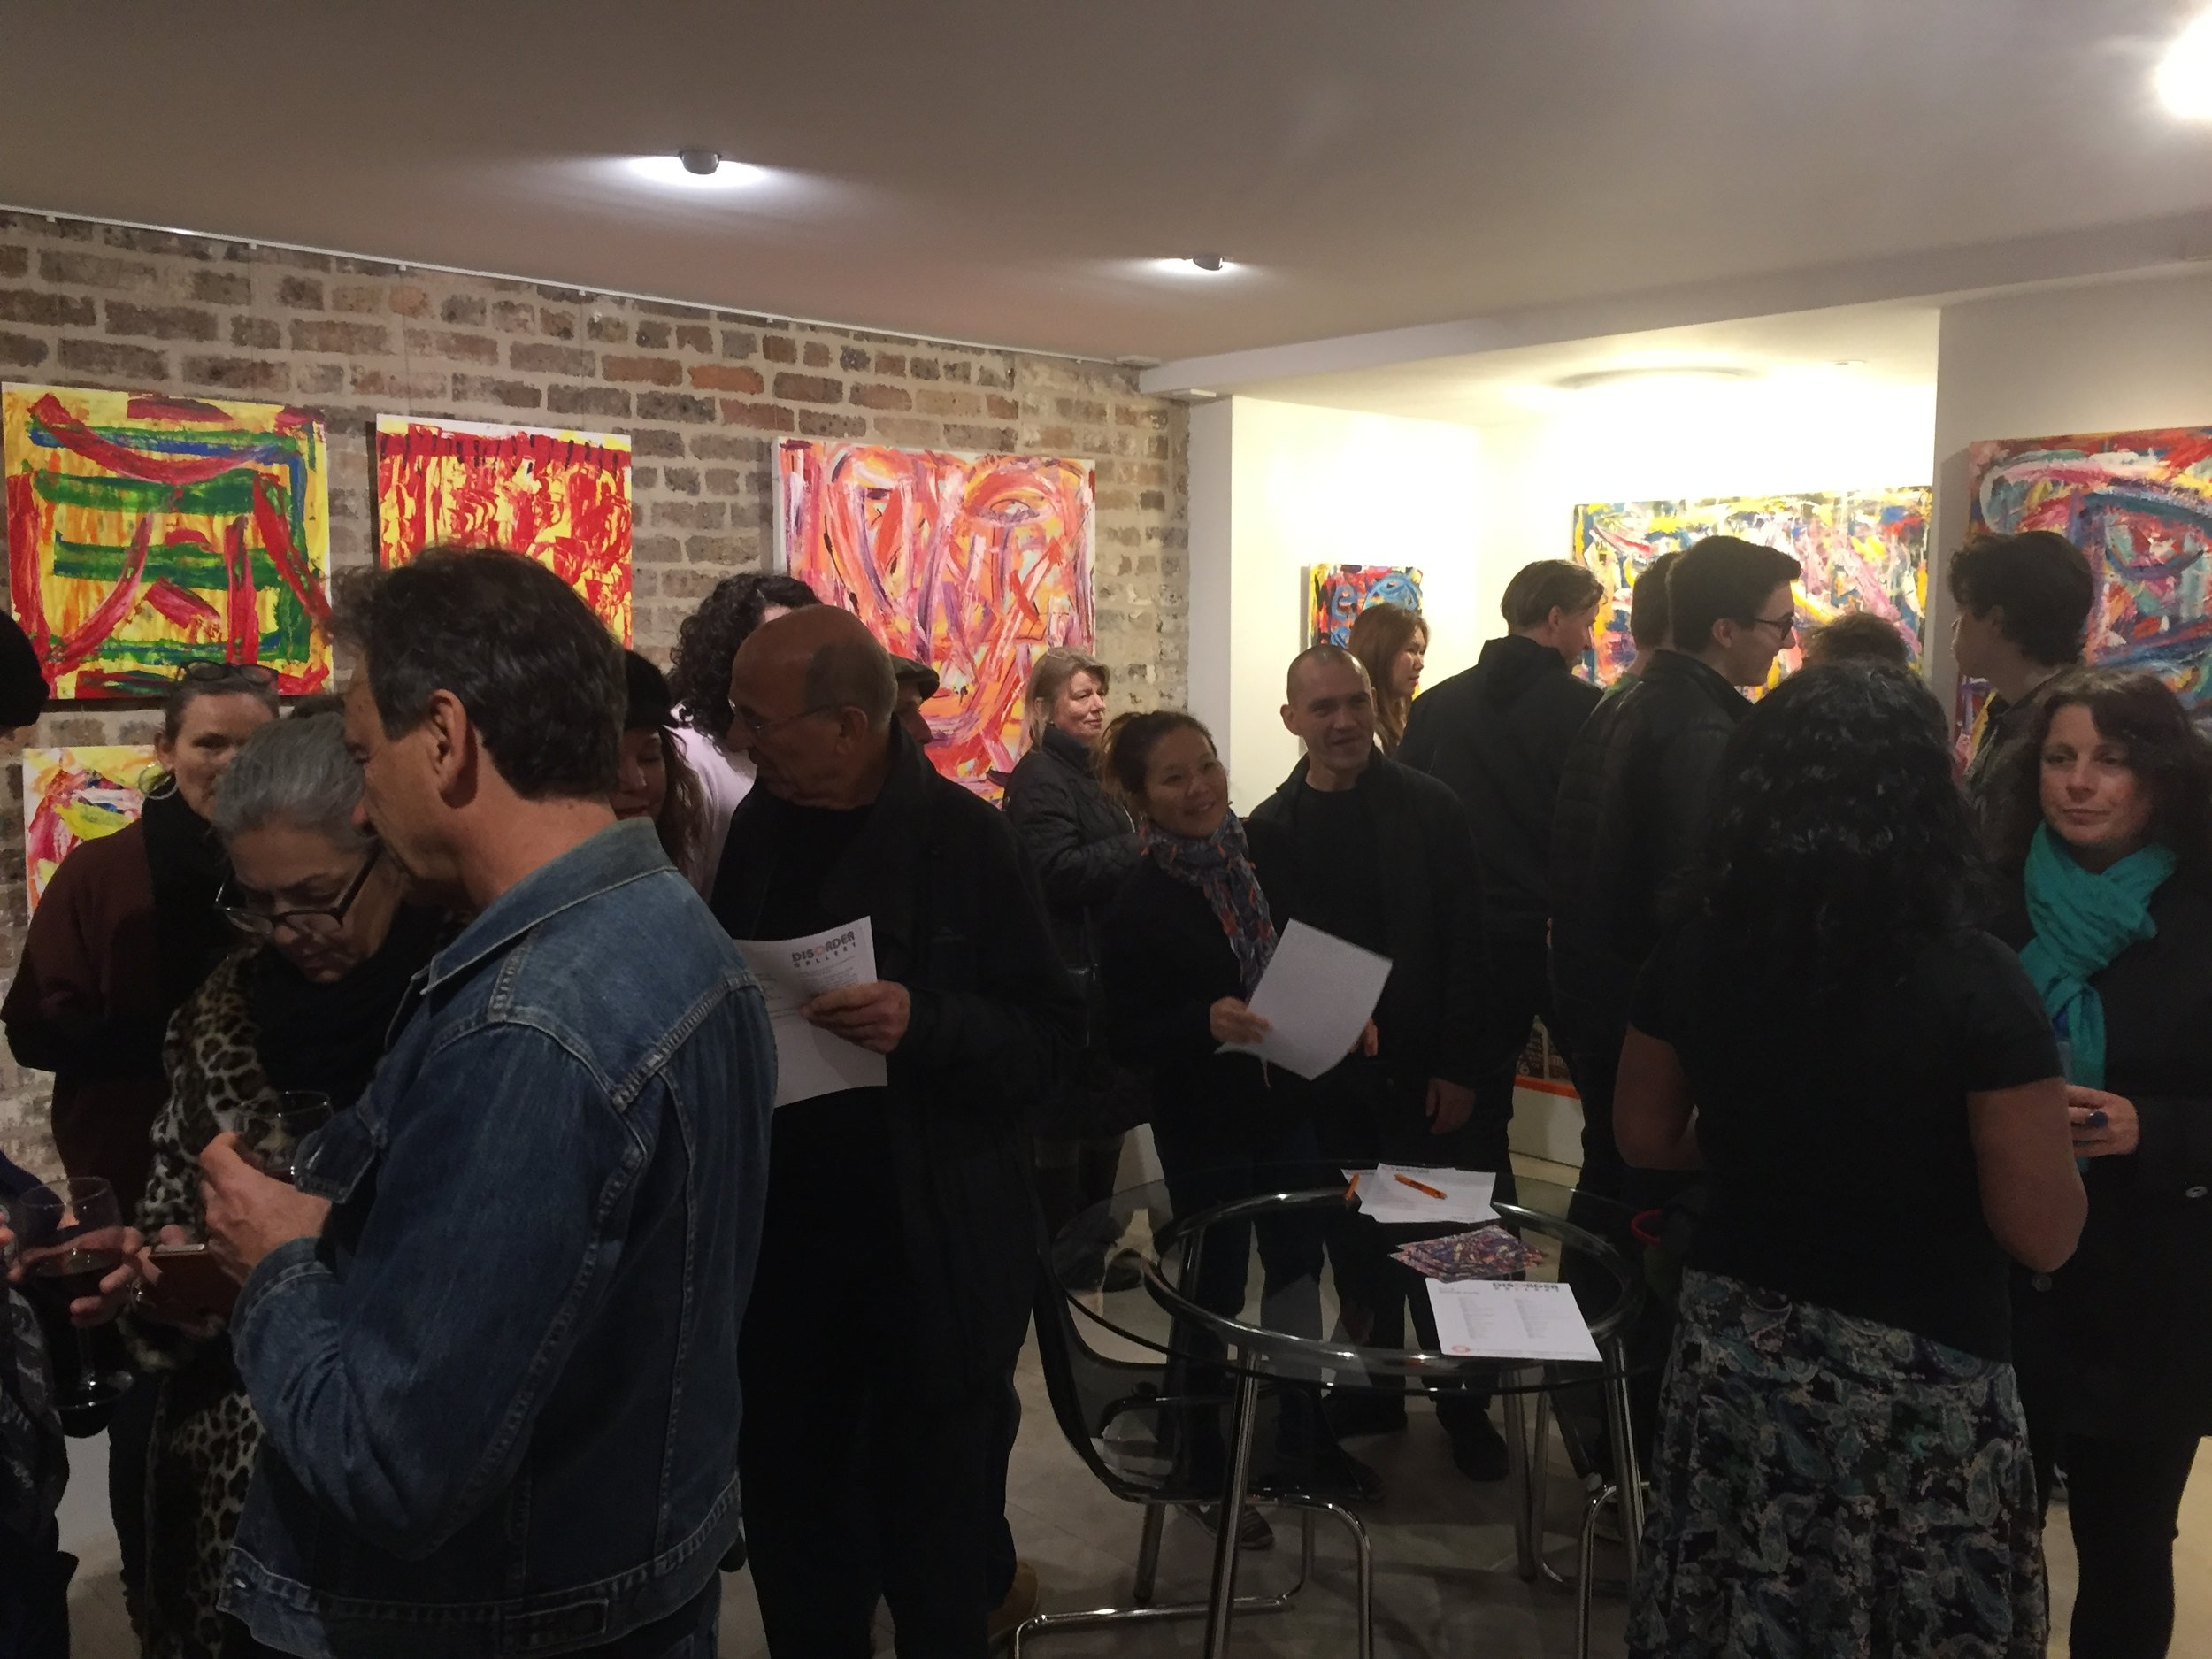 The crowd on opening night of Michael Saker at Disorder Gallery